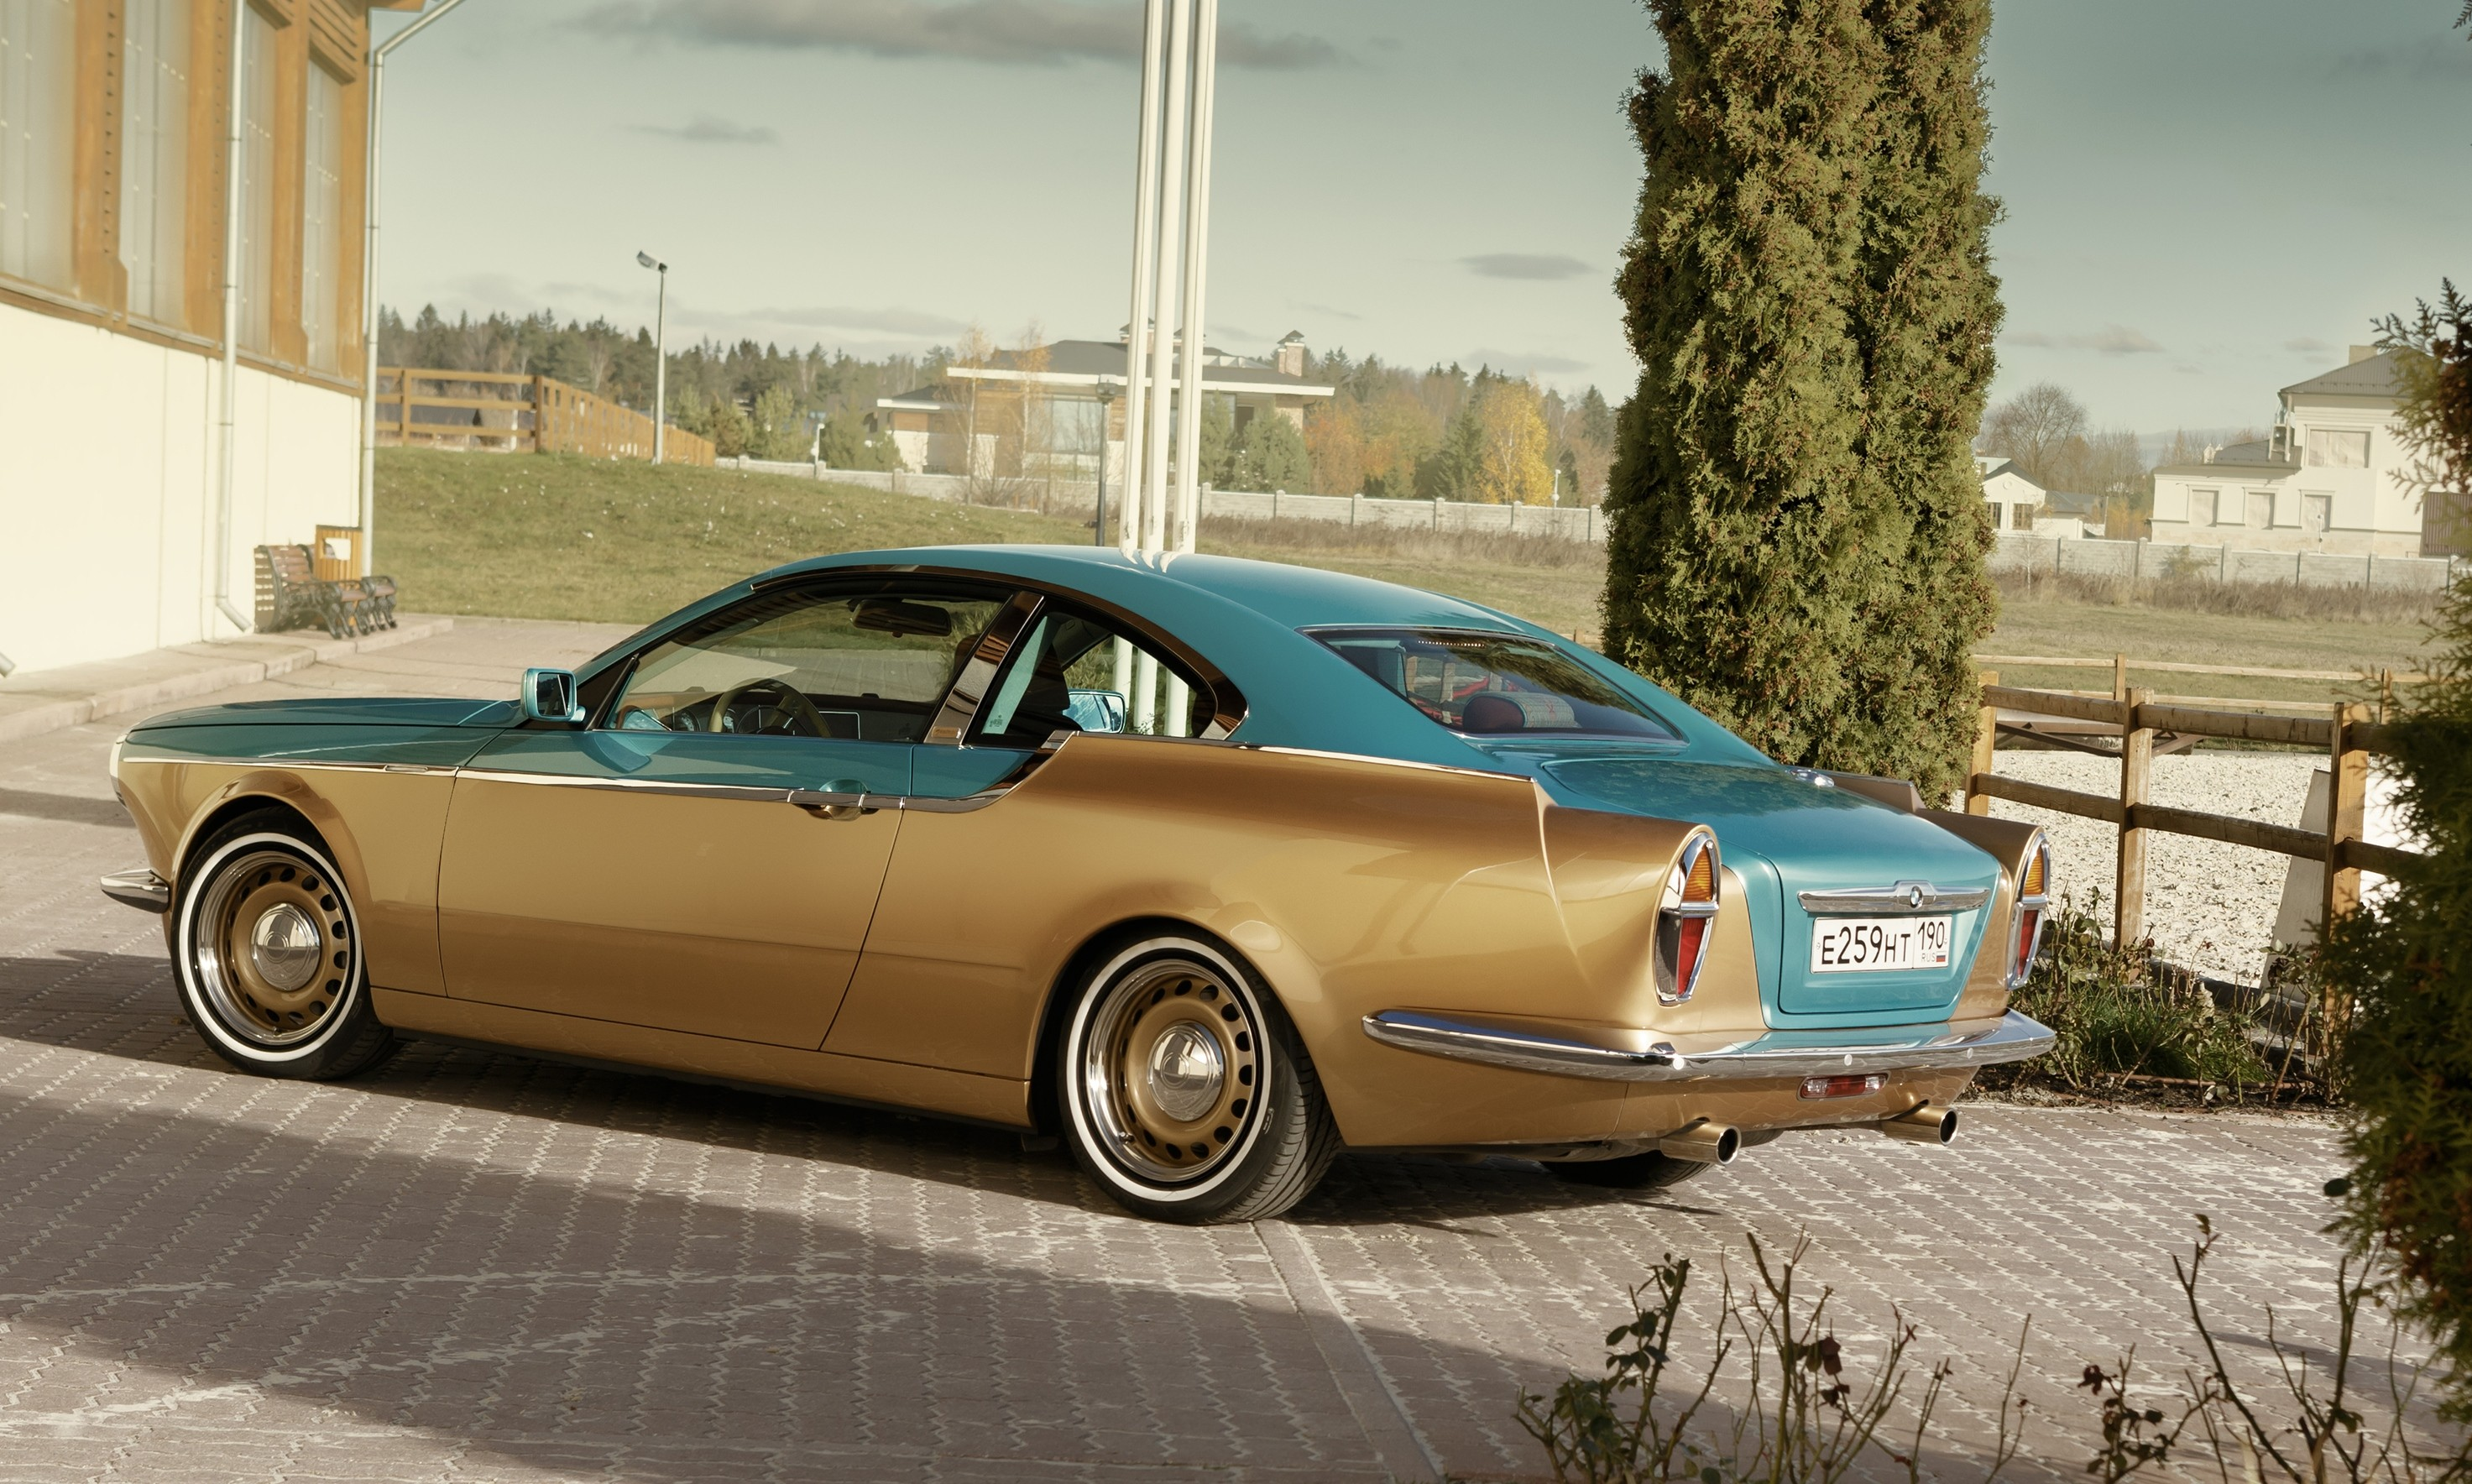 2015 Bilenkin Vintage Is A Bmw M3 Turned Retro Russian Coupe With Omg Factor Autoevolution